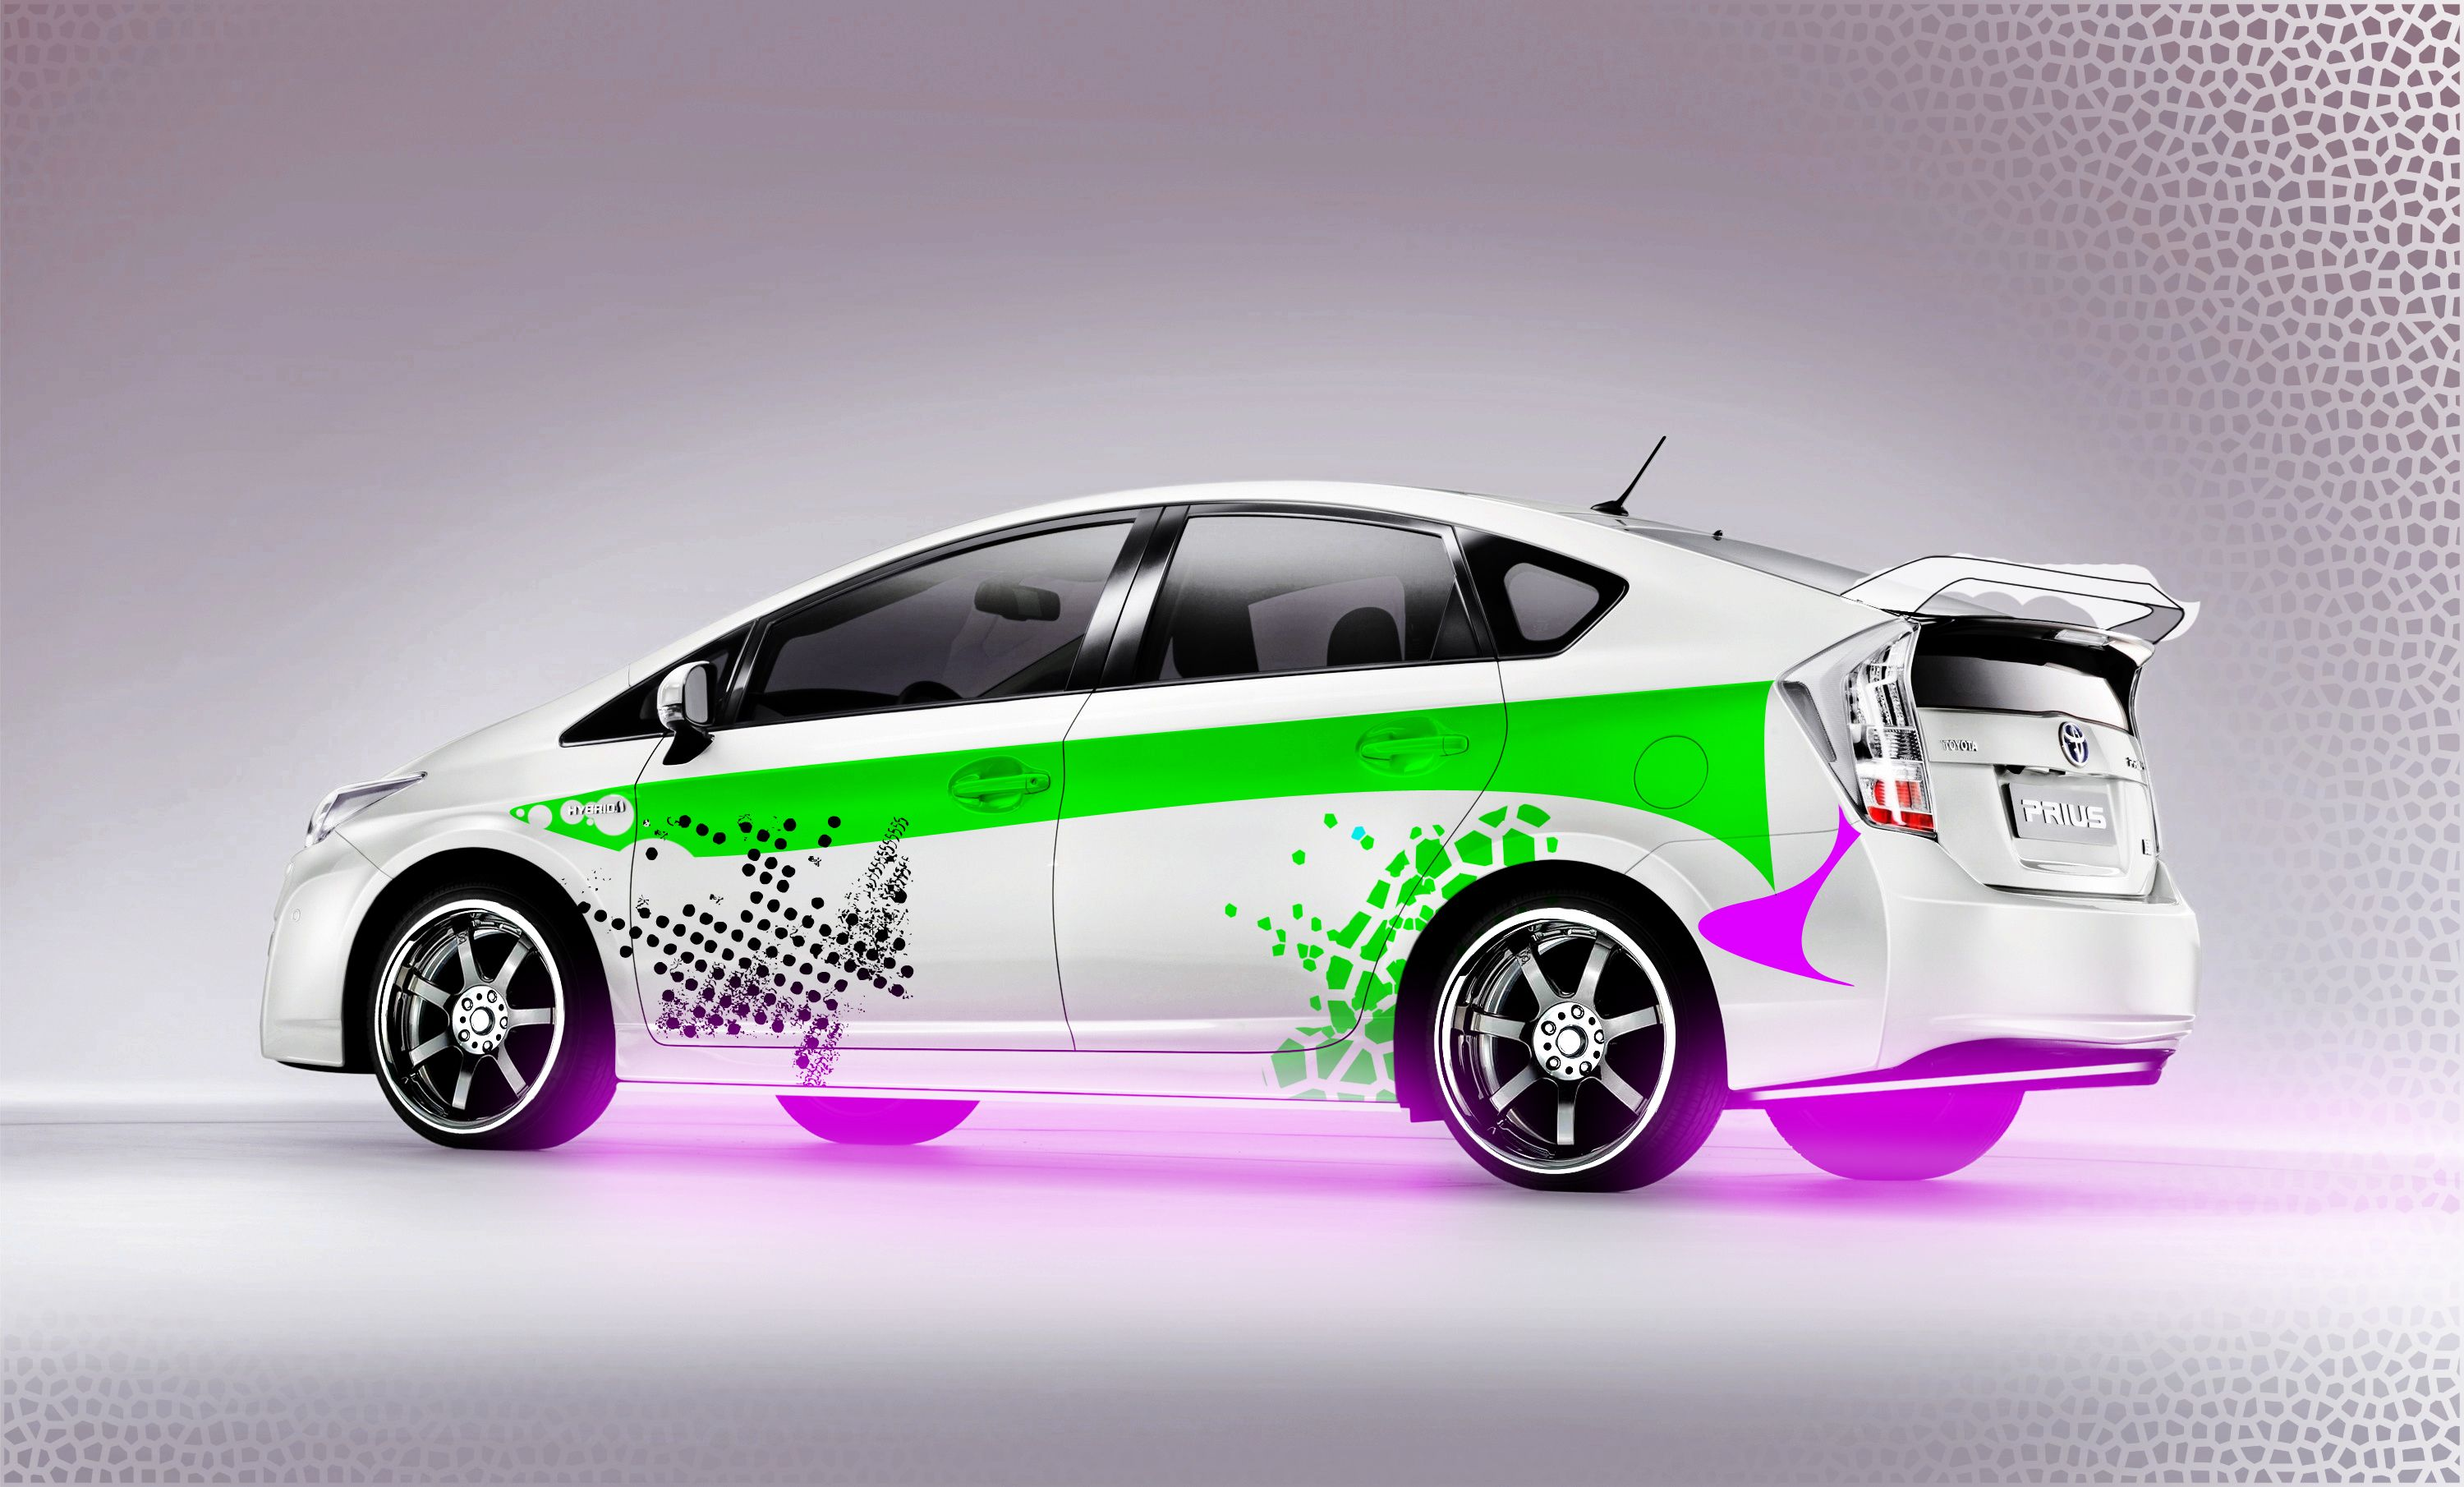 What Do You Think Of The Lights On This Prius Is It Street Legal